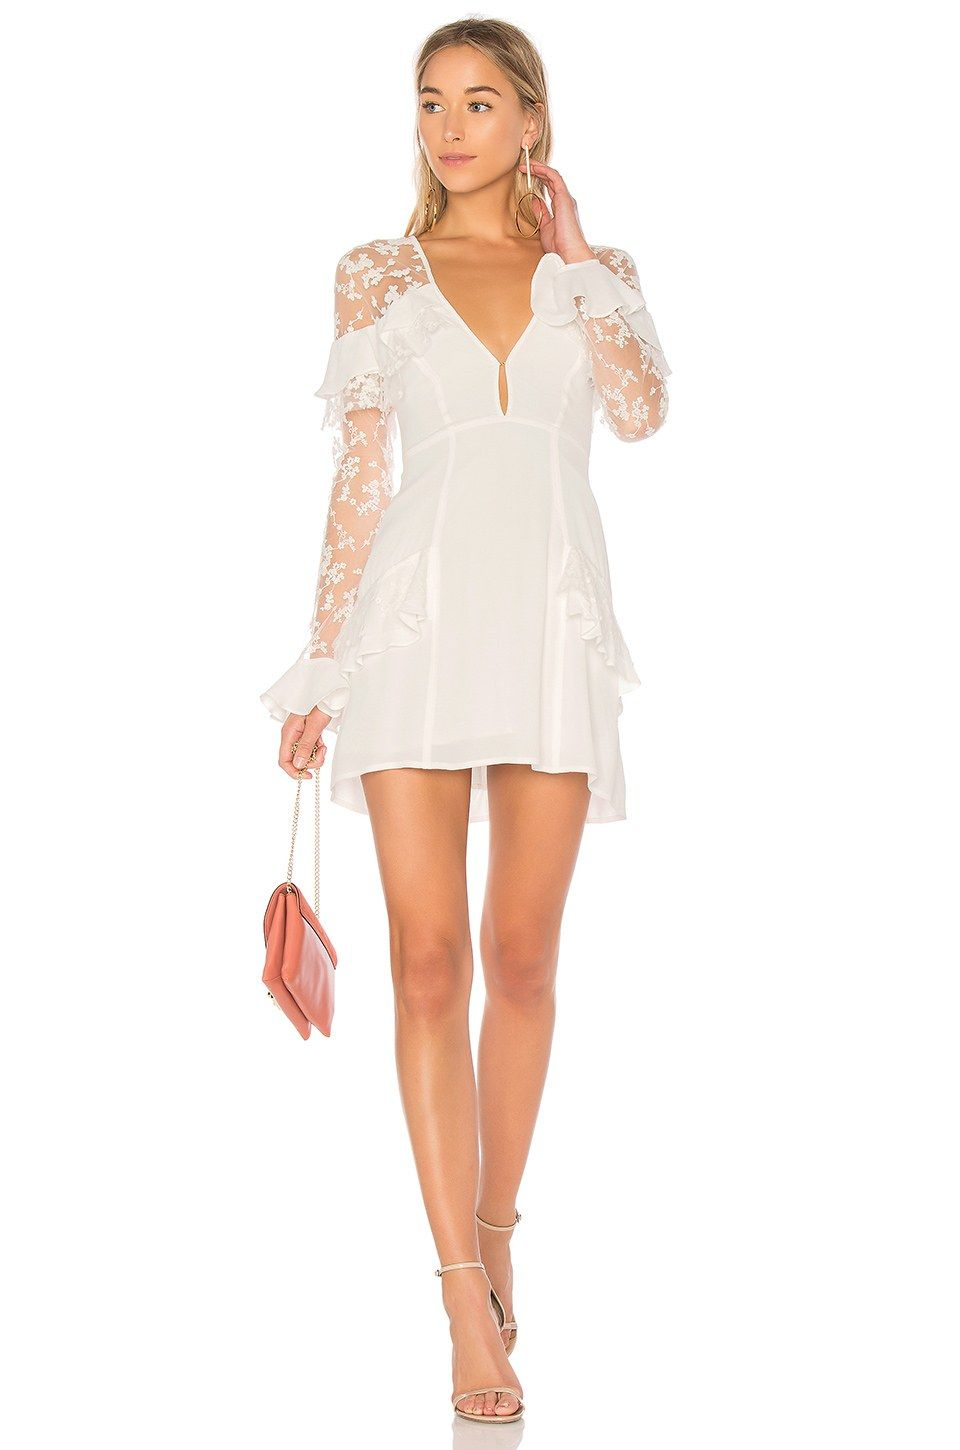 short wedding dresses you can buy now brides reception